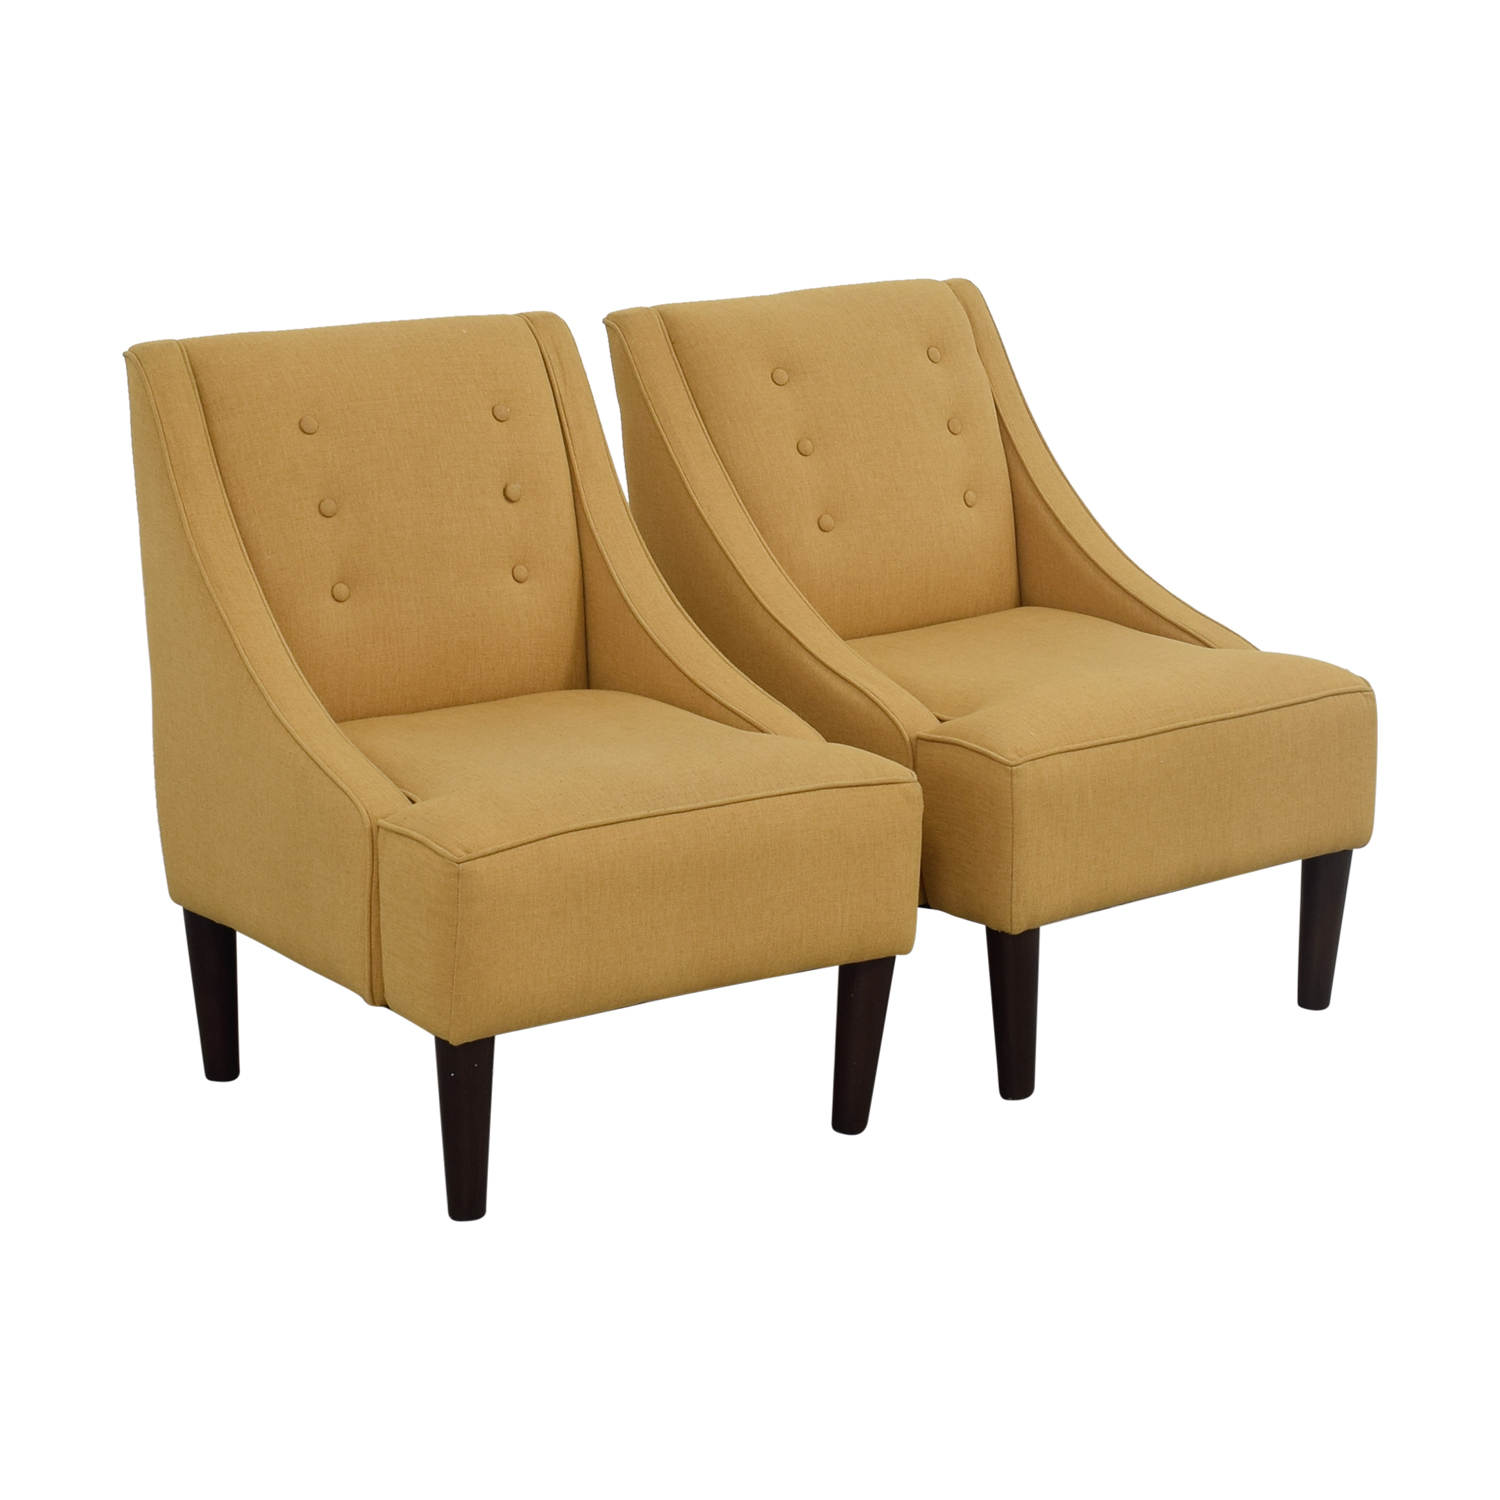 Mustard Accent Chair 77 Off Thomas Paul Thomas Paul Mustard Tufted Accent